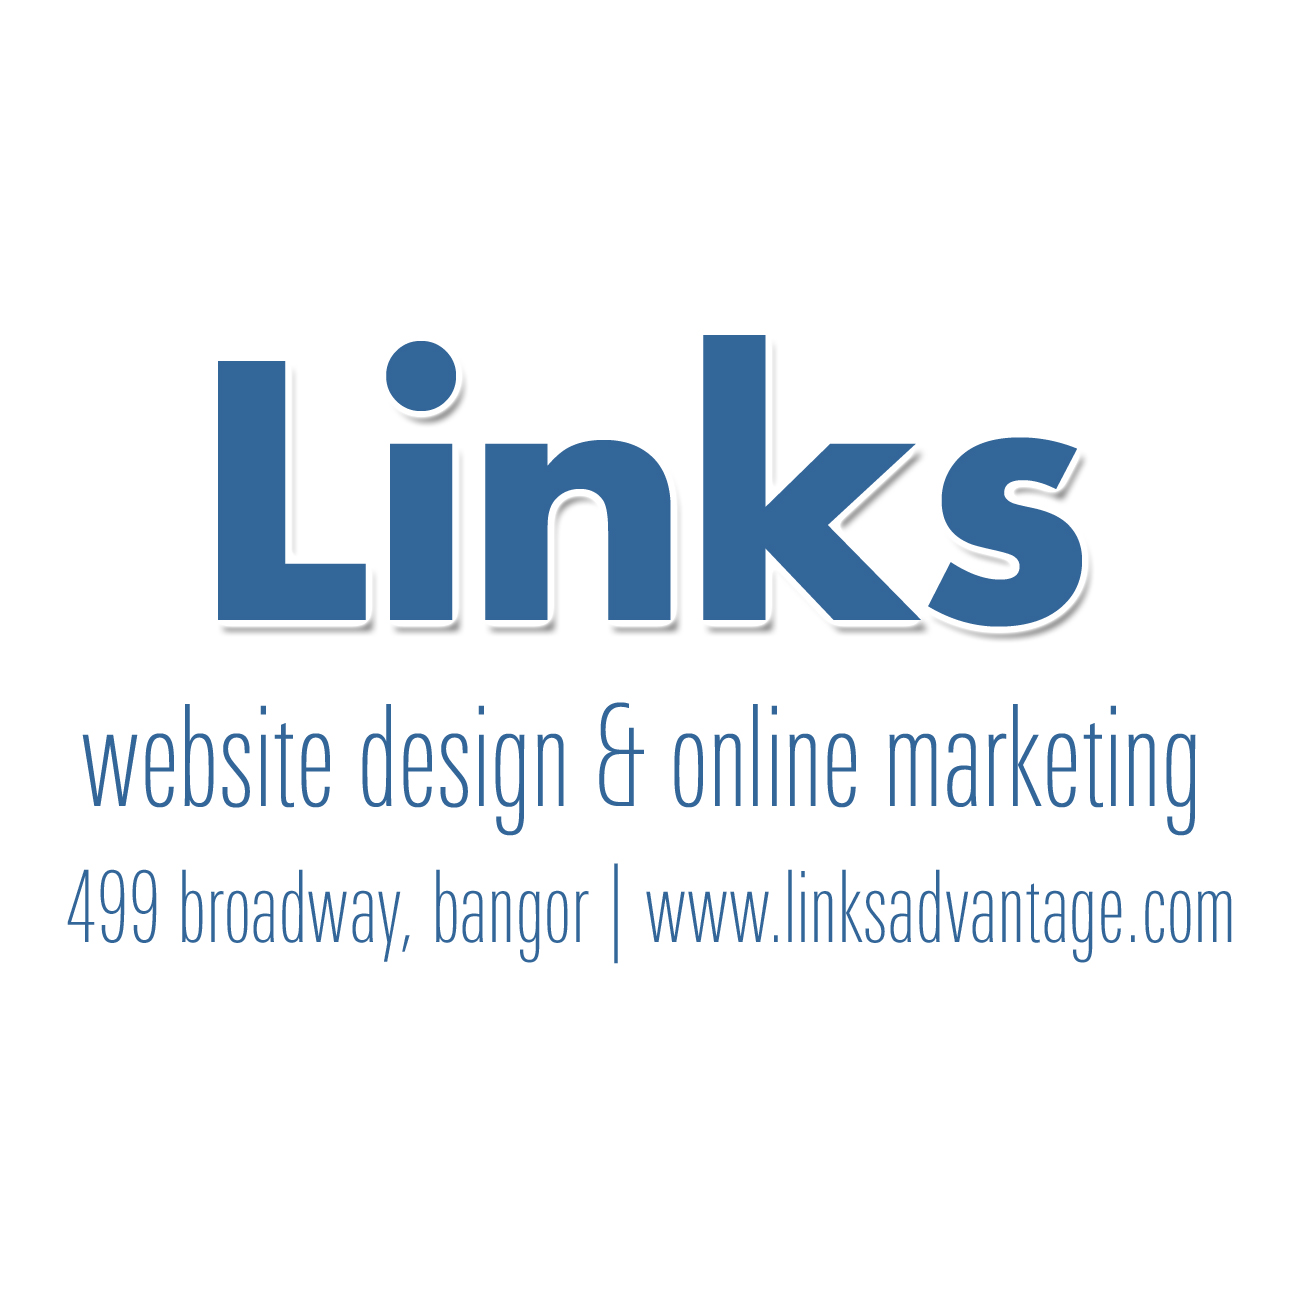 links-logo-7-25-2011